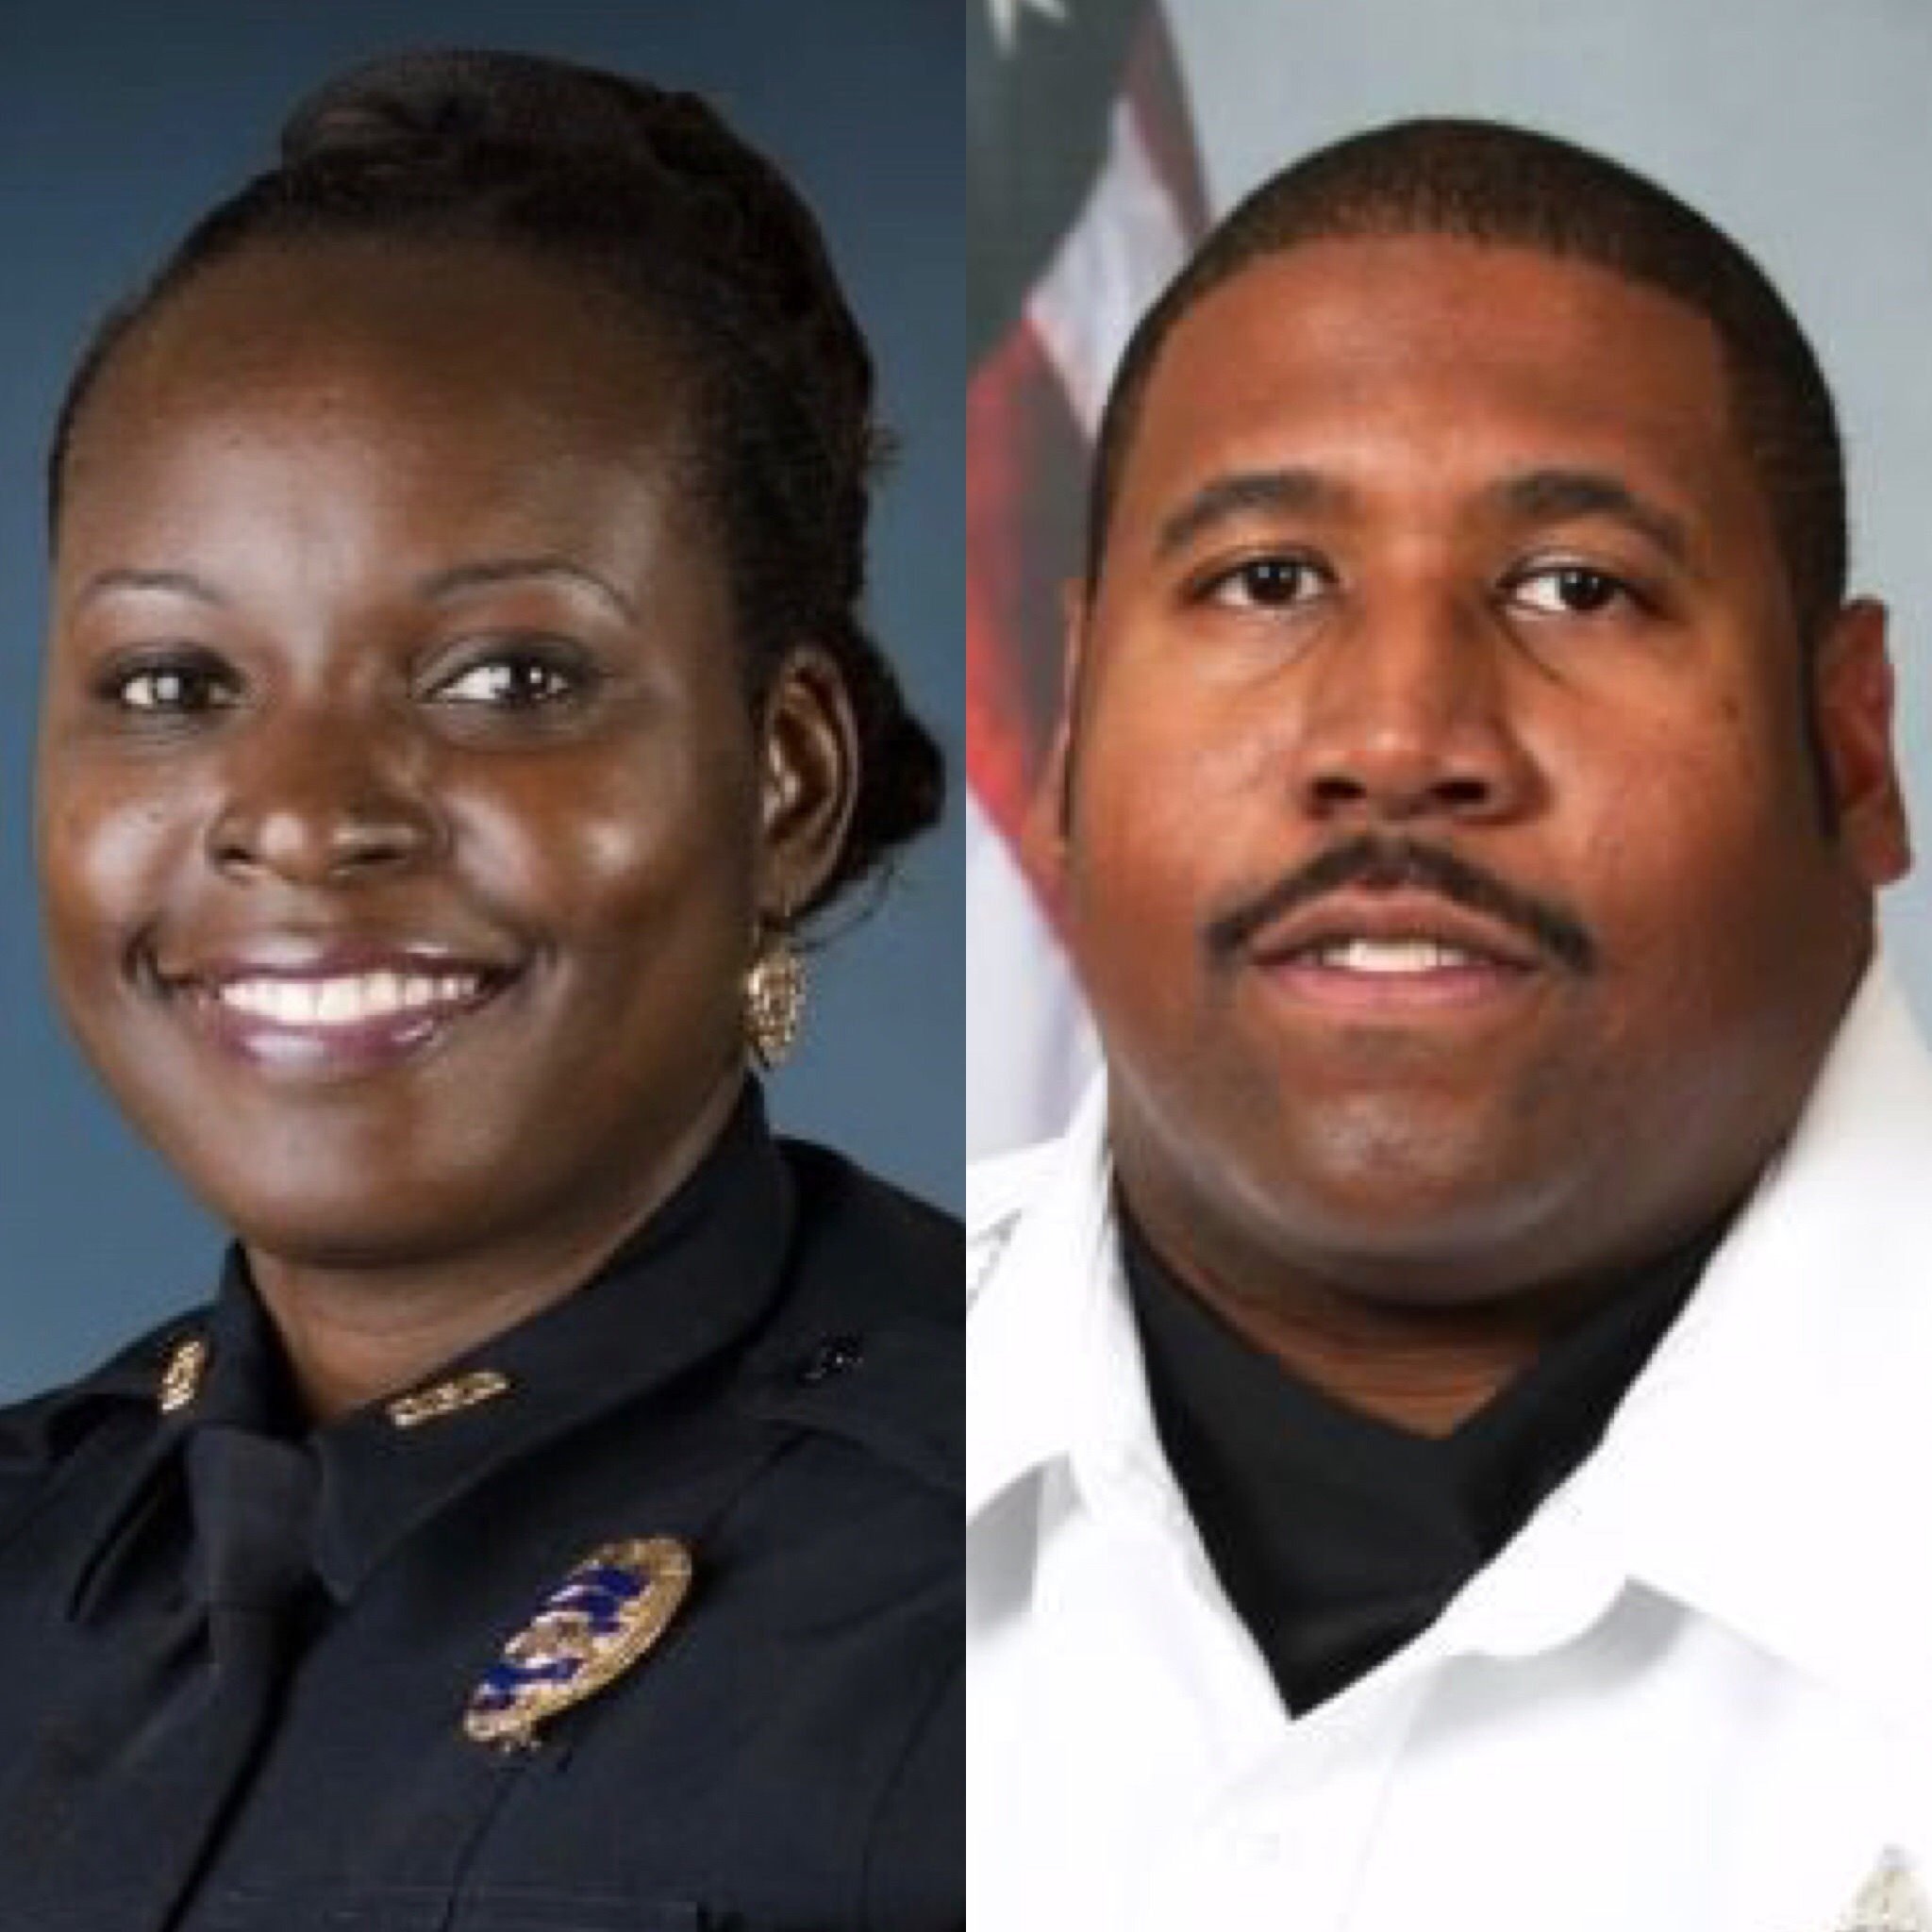 Deputy First Class Norman Lewis of the Orange County Sheriff's Office (R) killed in traffic accident during manhunt for suspect in killing of Orlando police Master Sgt. Debra Clayton